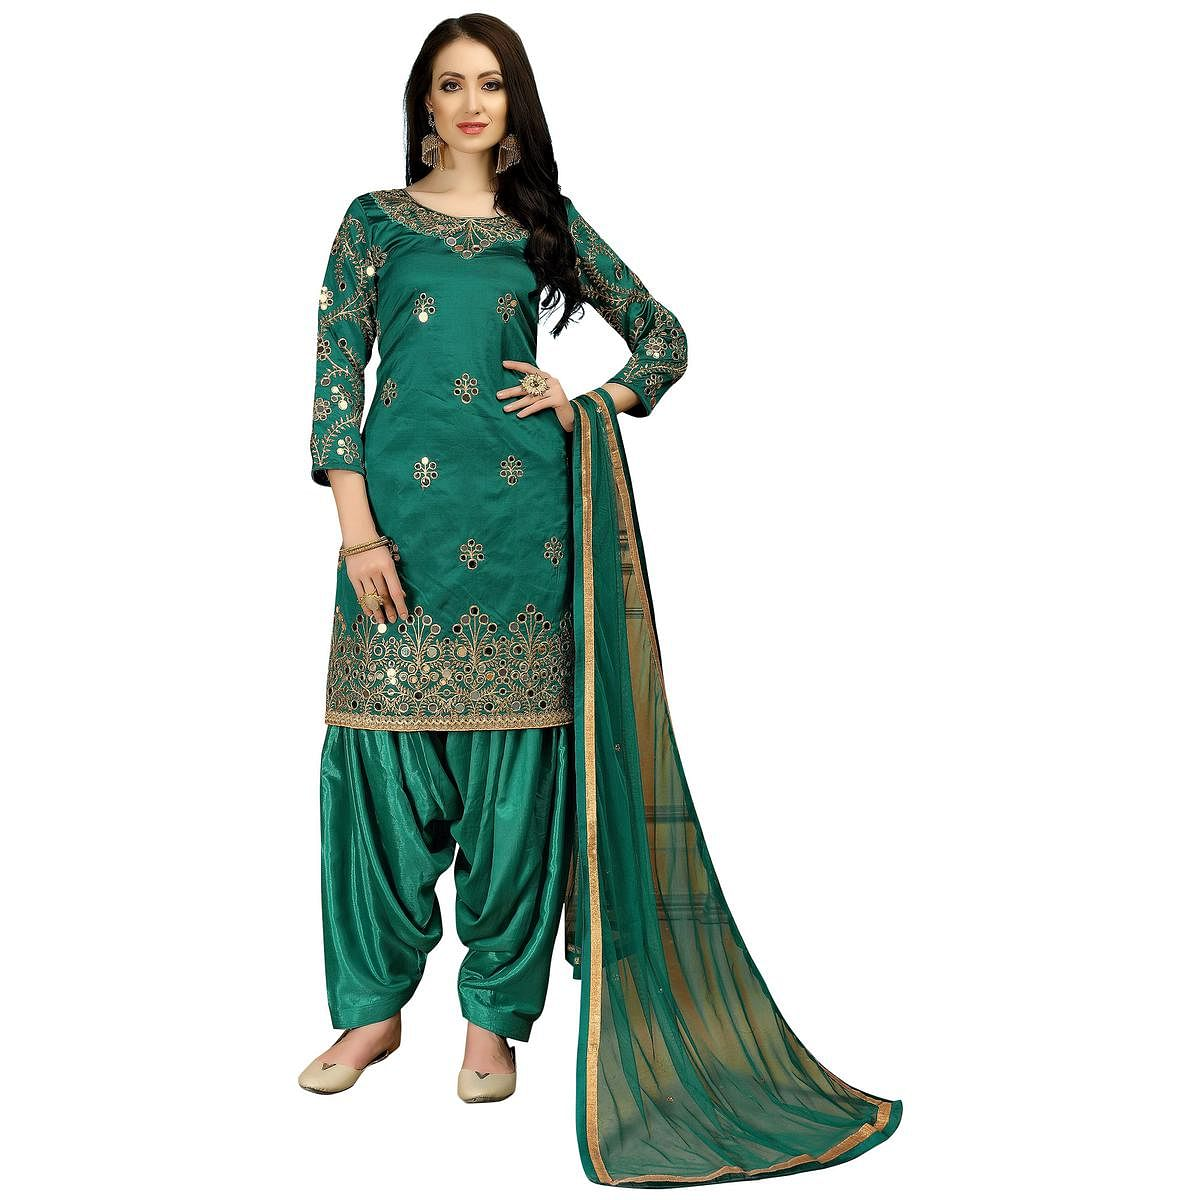 Glowing Turquoise Green Colored Partywear Embroidered Tapeta Silk Suit